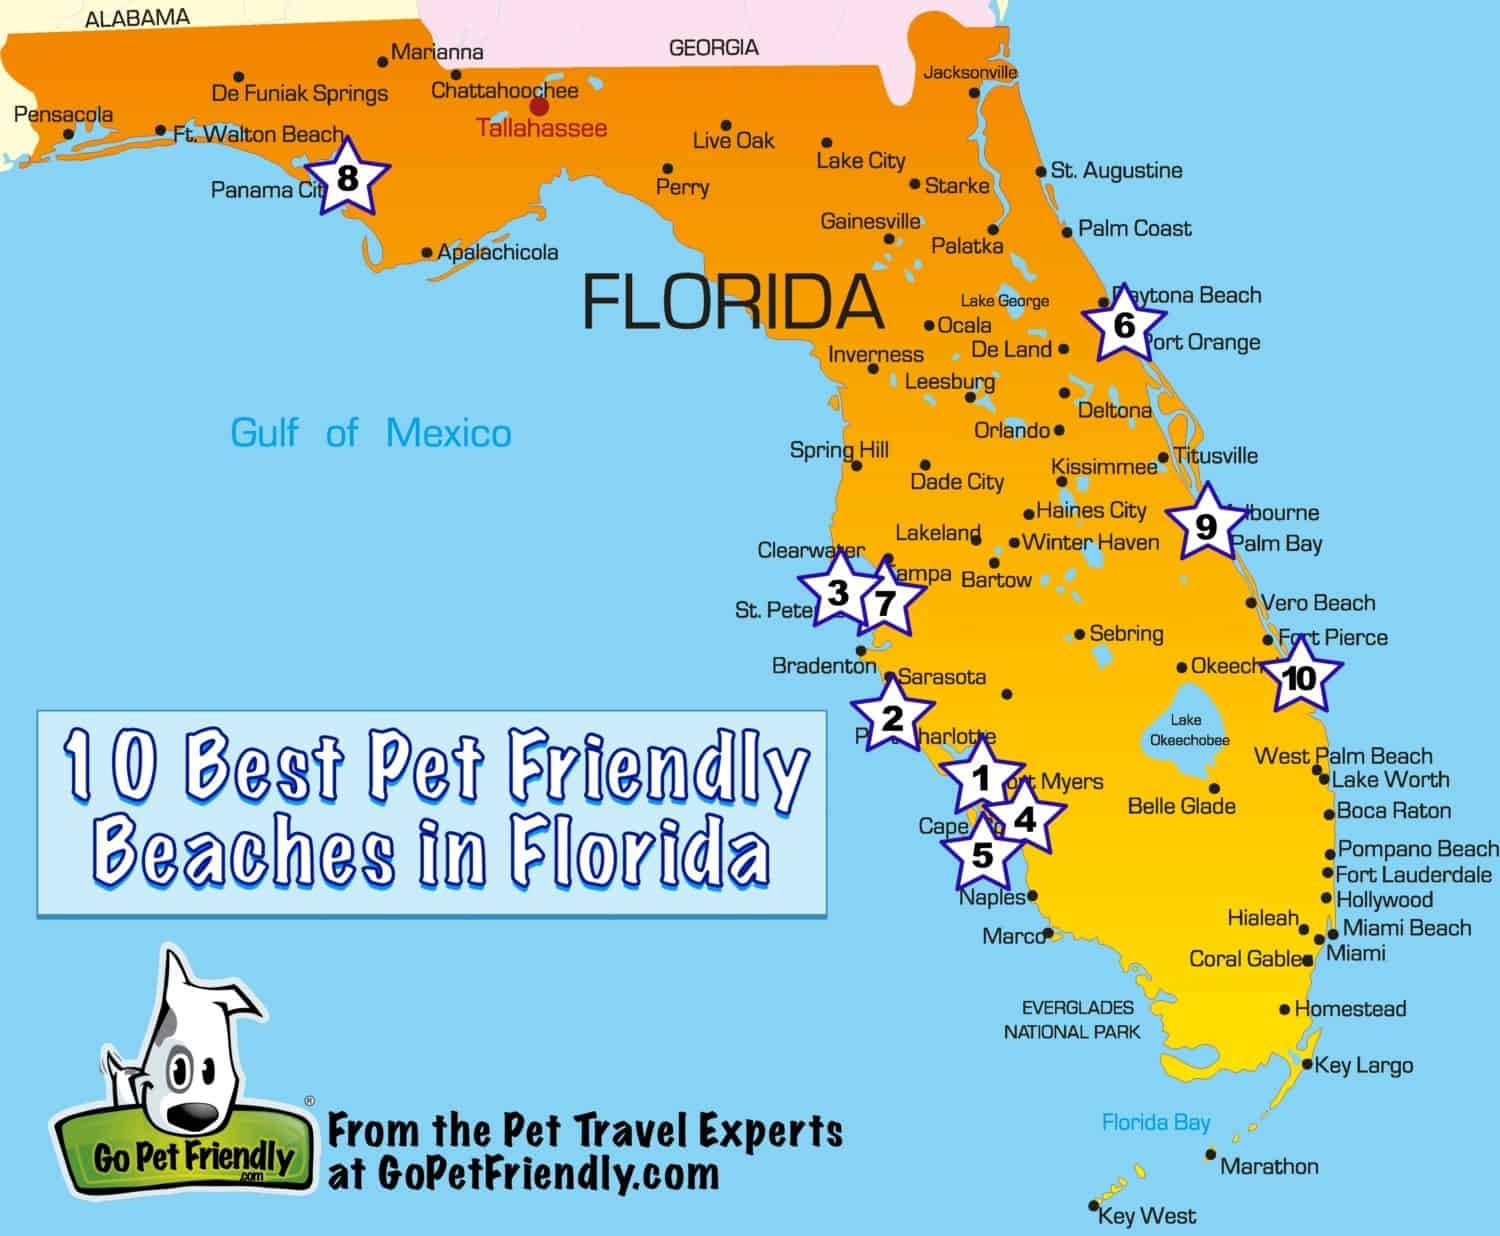 10 Of The Best Pet Friendly Beaches In Florida - Map Of Best Beaches In Florida